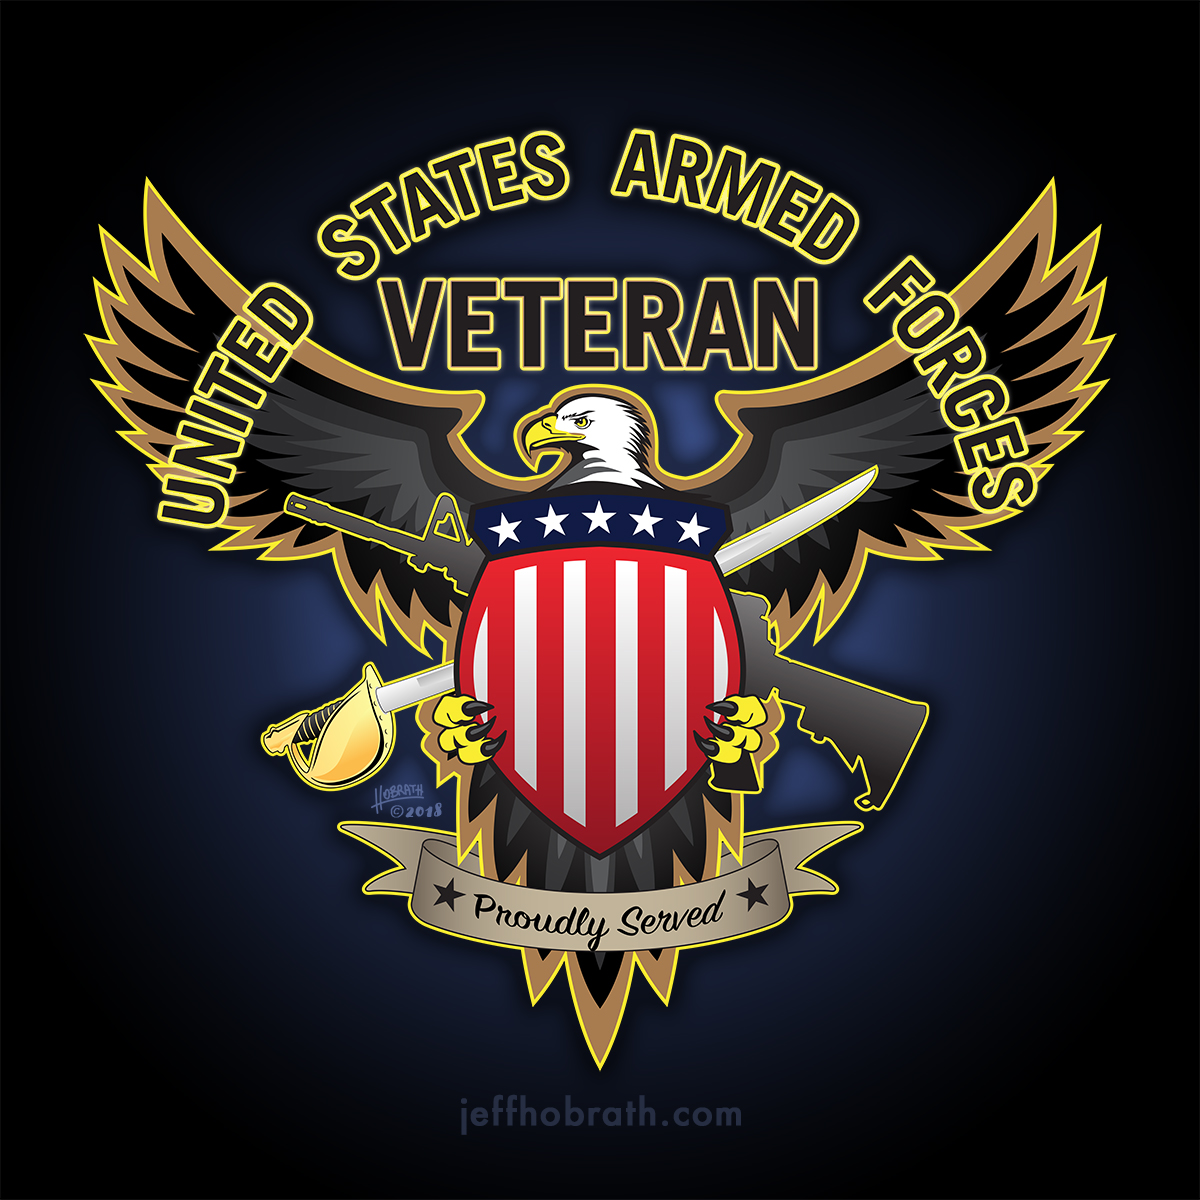 United States Armed Forces Veteran - Proudly Served